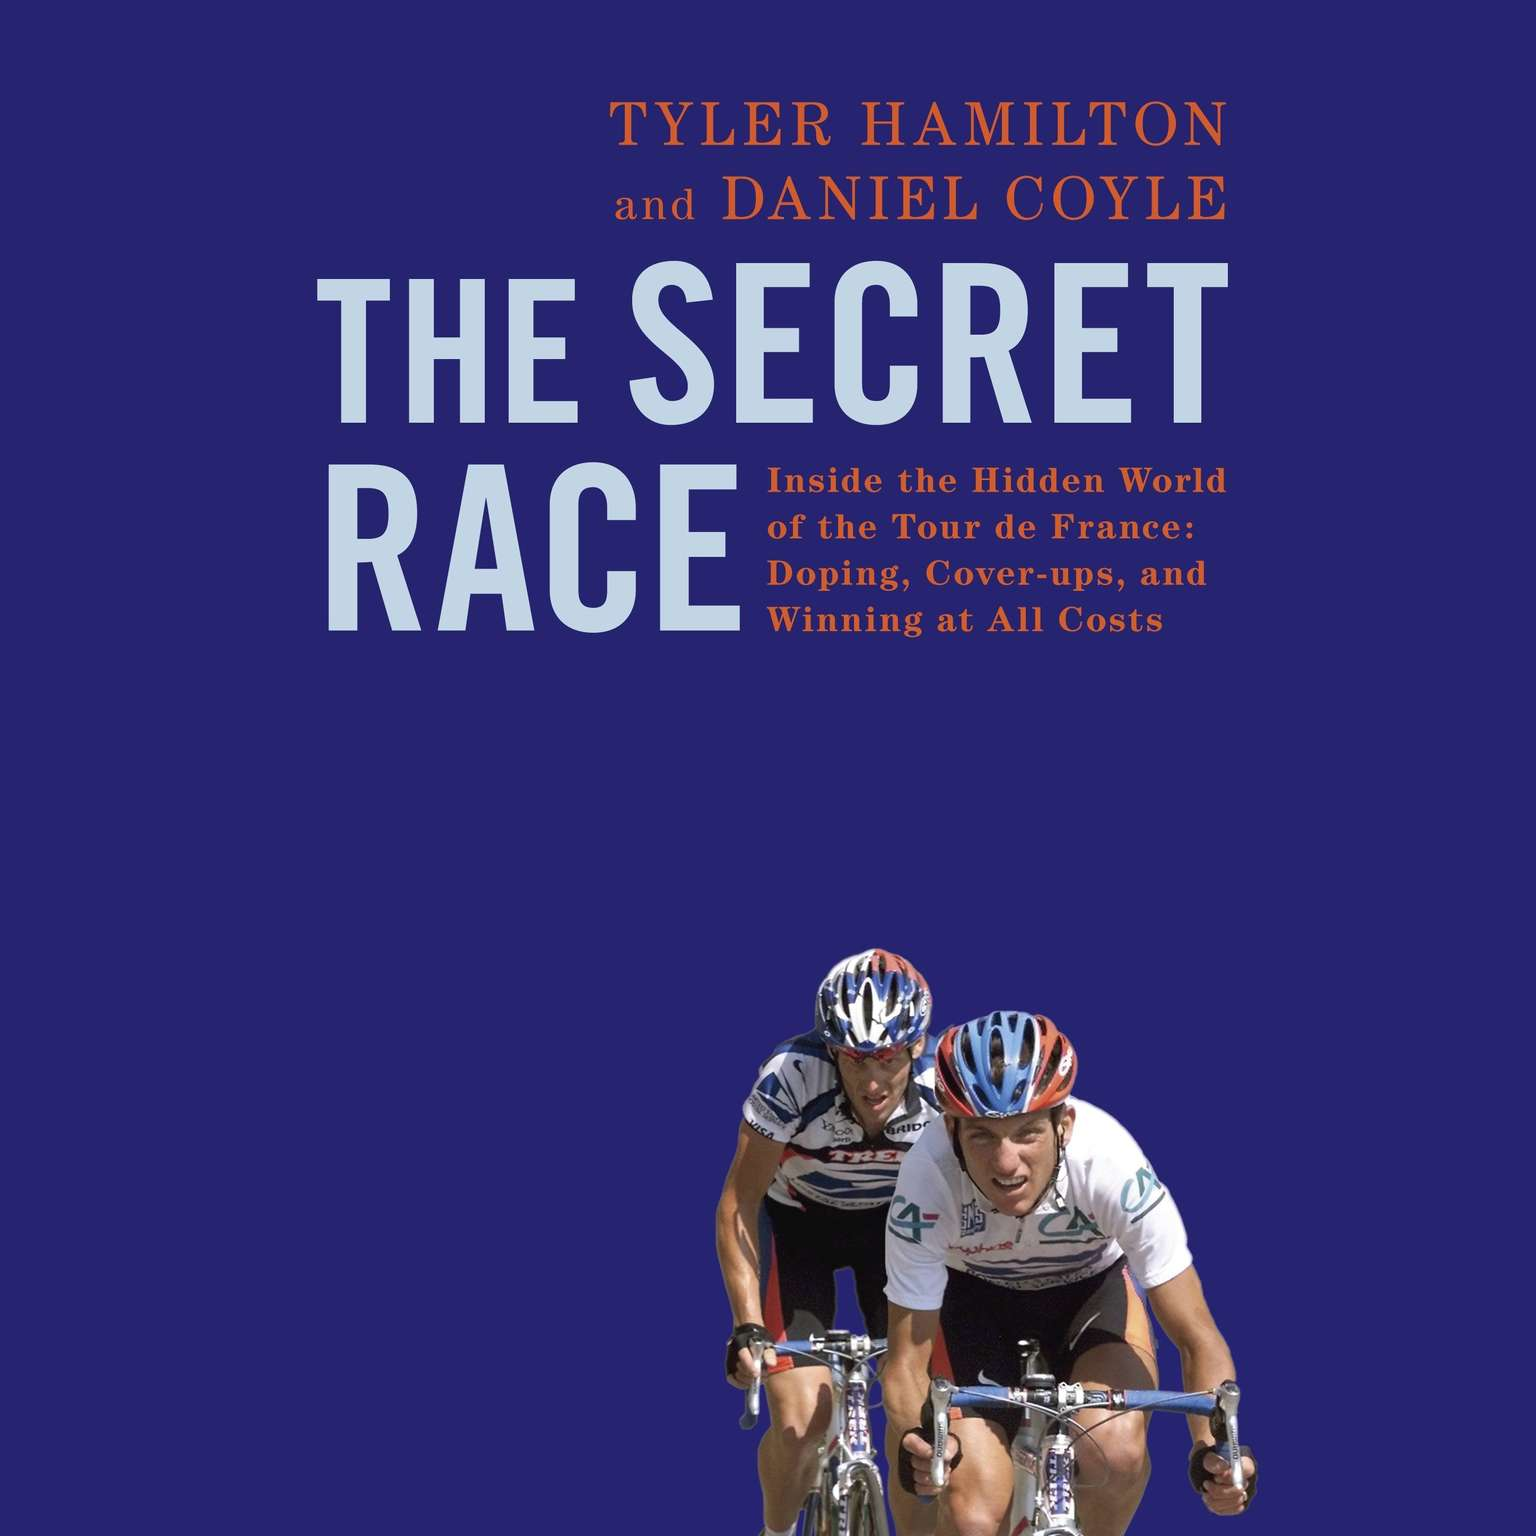 Printable The Secret Race: Inside the Hidden World of the Tour de France: Doping, Cover-ups, and Winning at All Costs: Inside the Hidden World of the Tour de France: Doping, Cover-ups, and Winning at All Costs Audiobook Cover Art